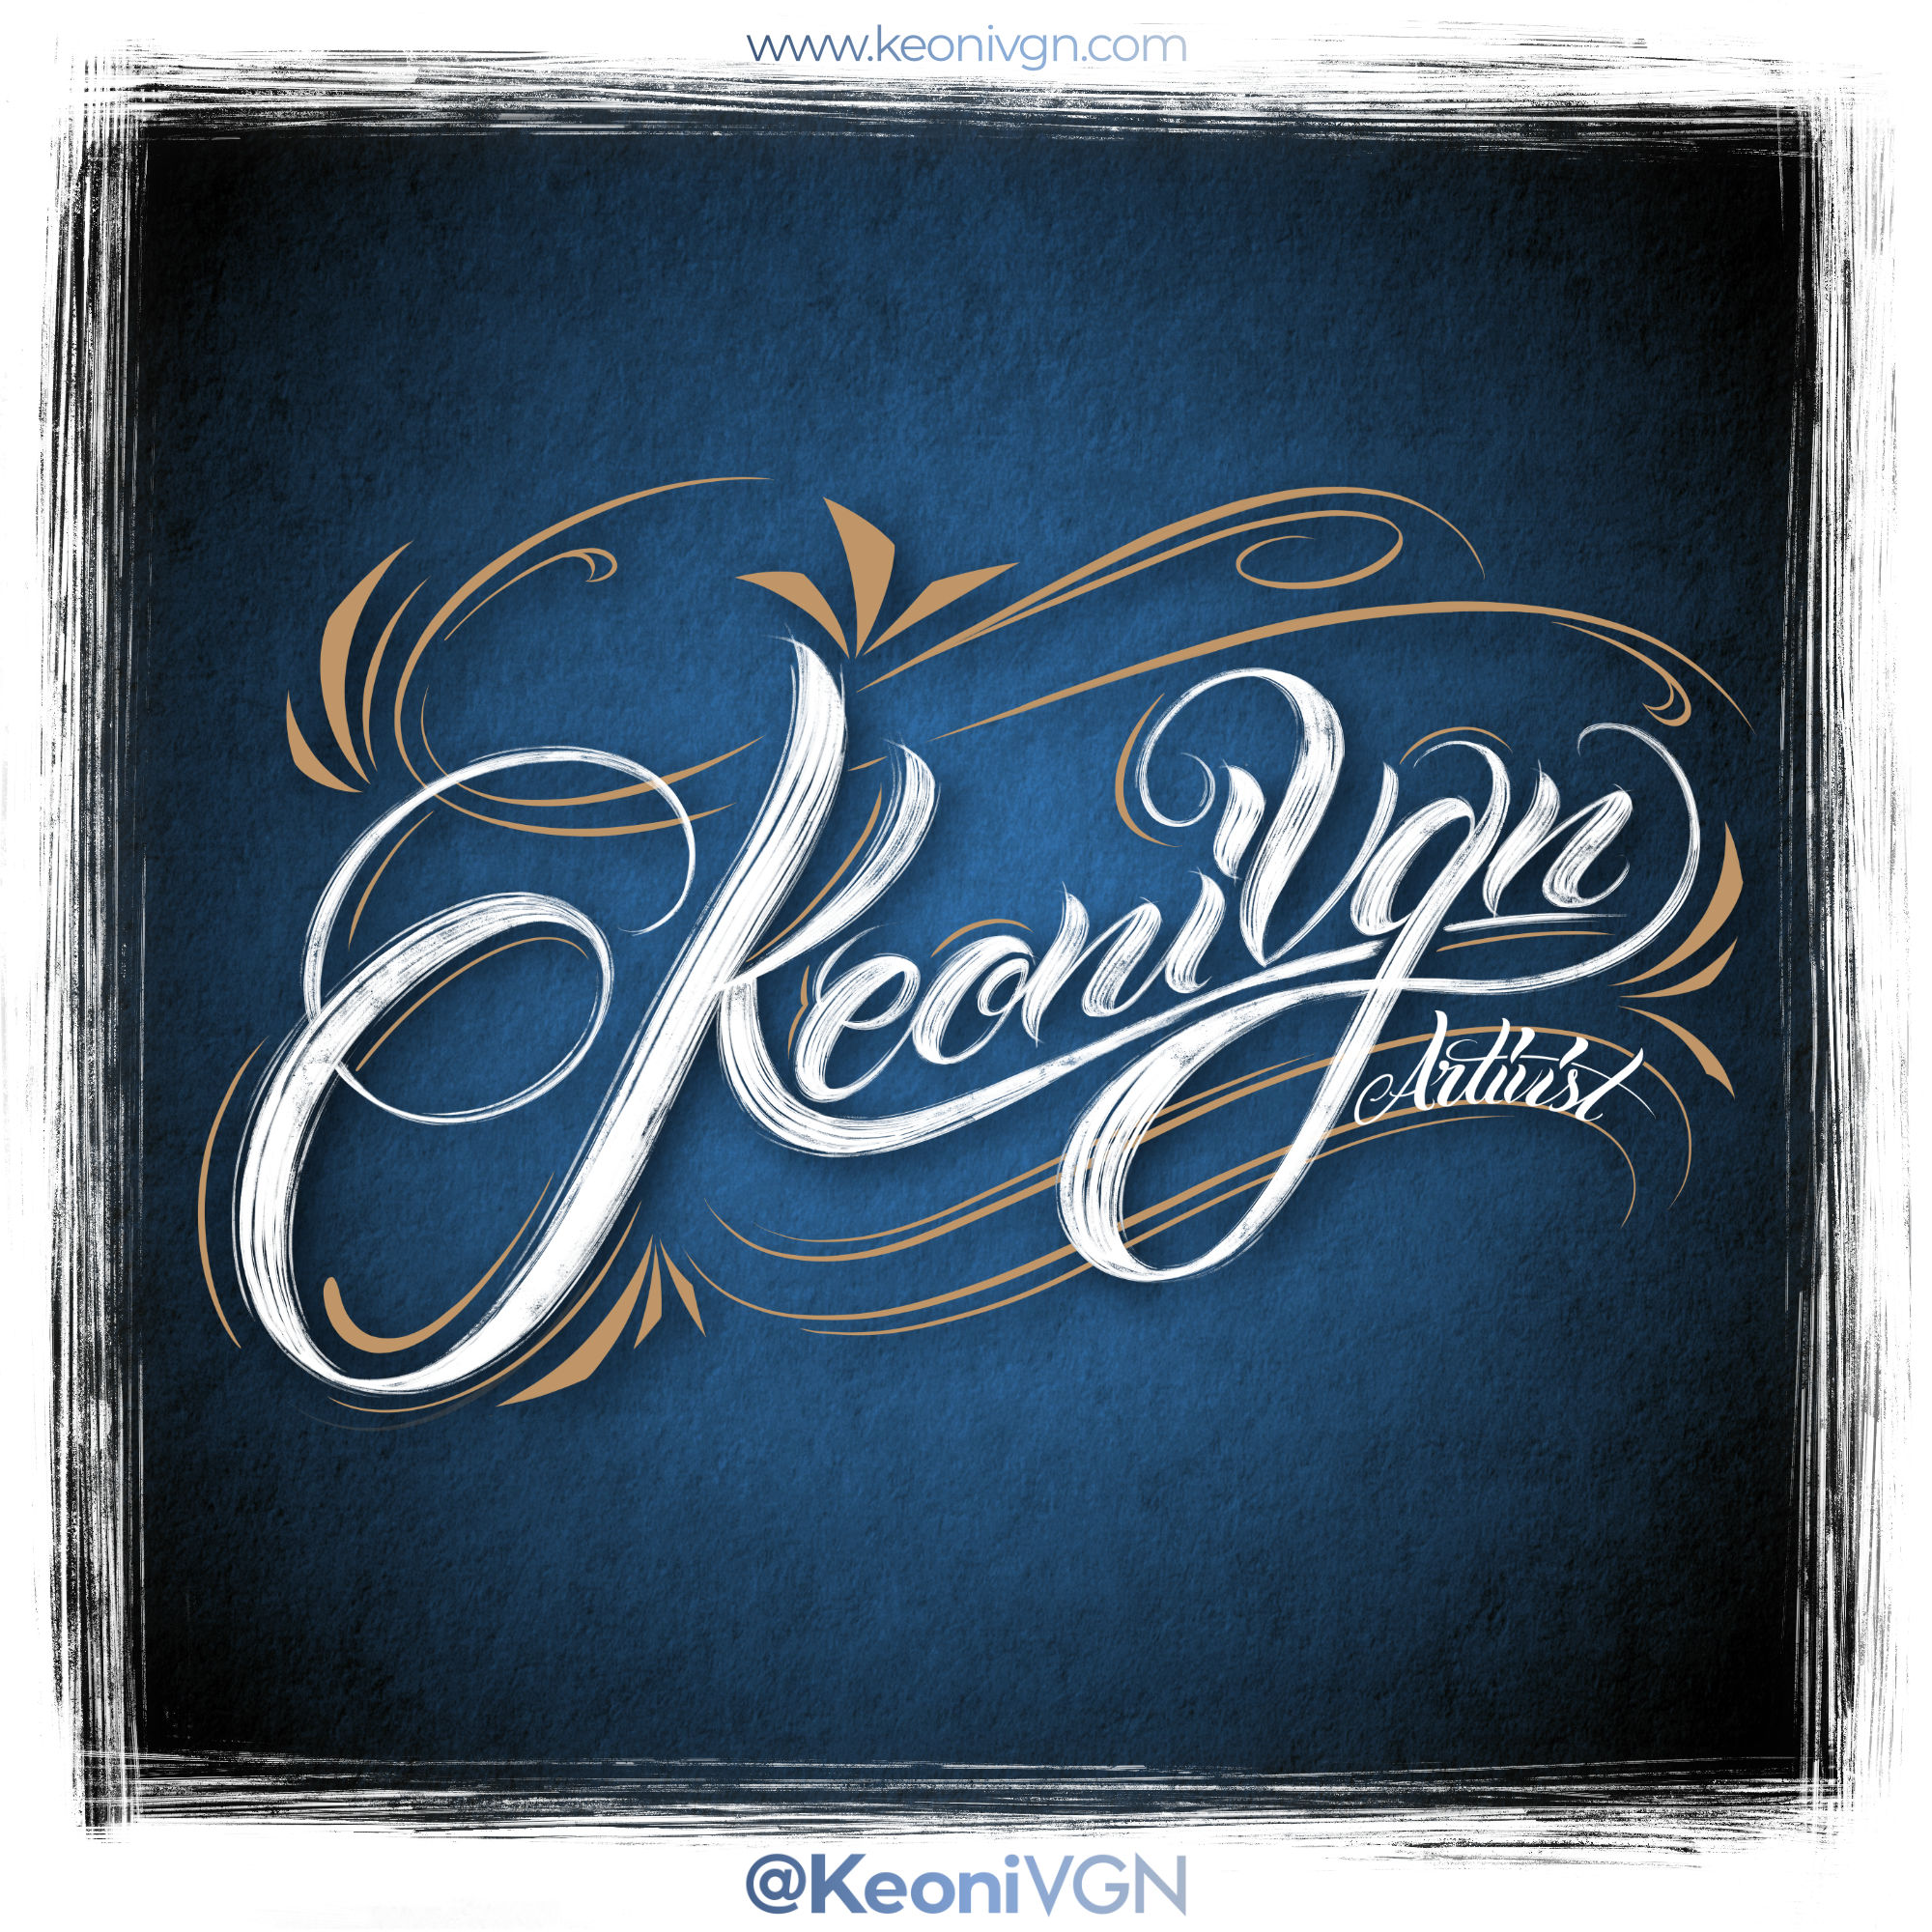 proyecto LETTERING KEONI VGN